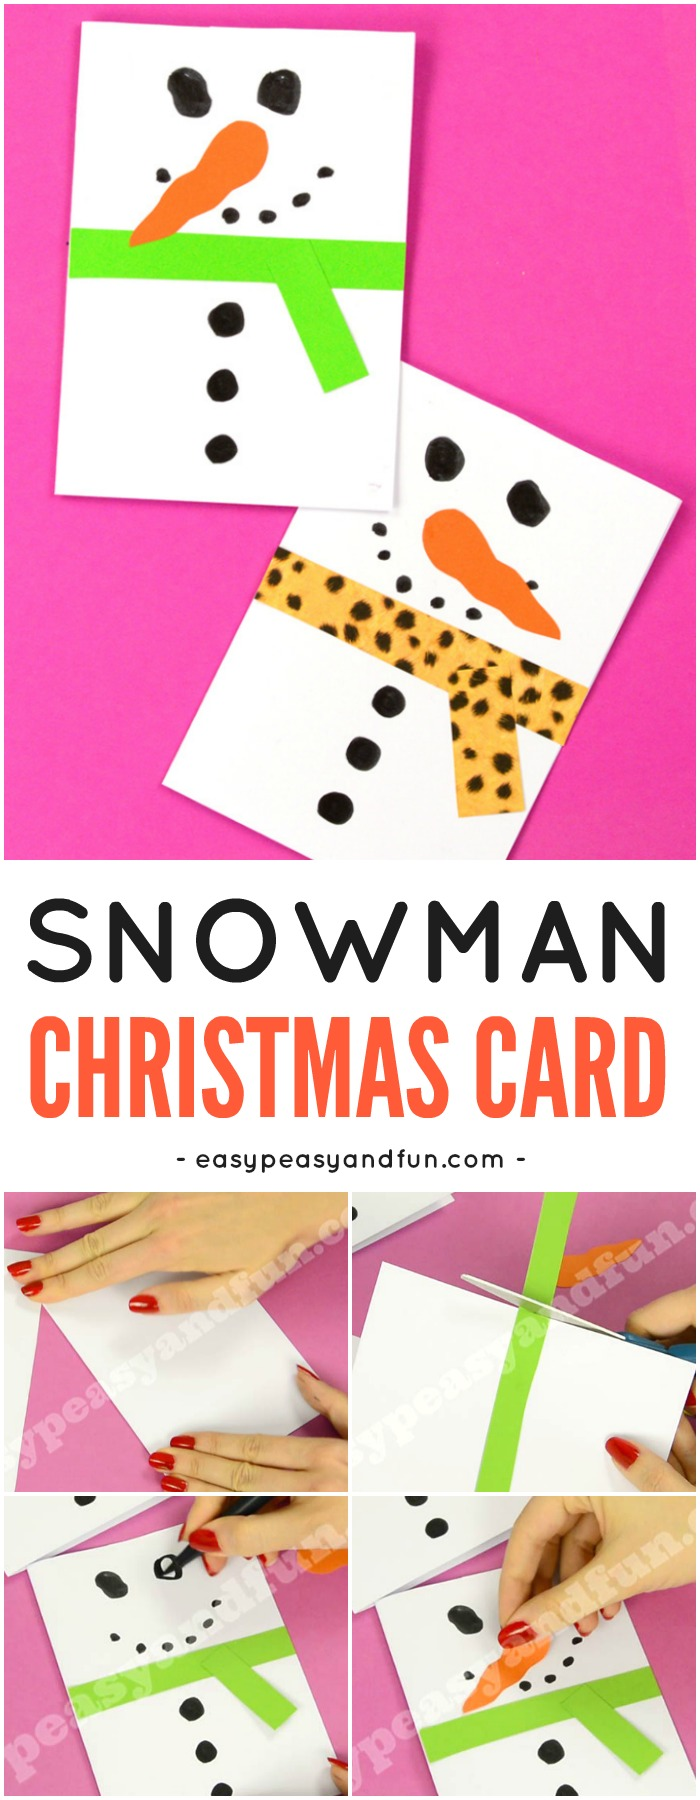 Easy Christmas Cards To Make With Children.Snowman Christmas Card Easy Peasy And Fun